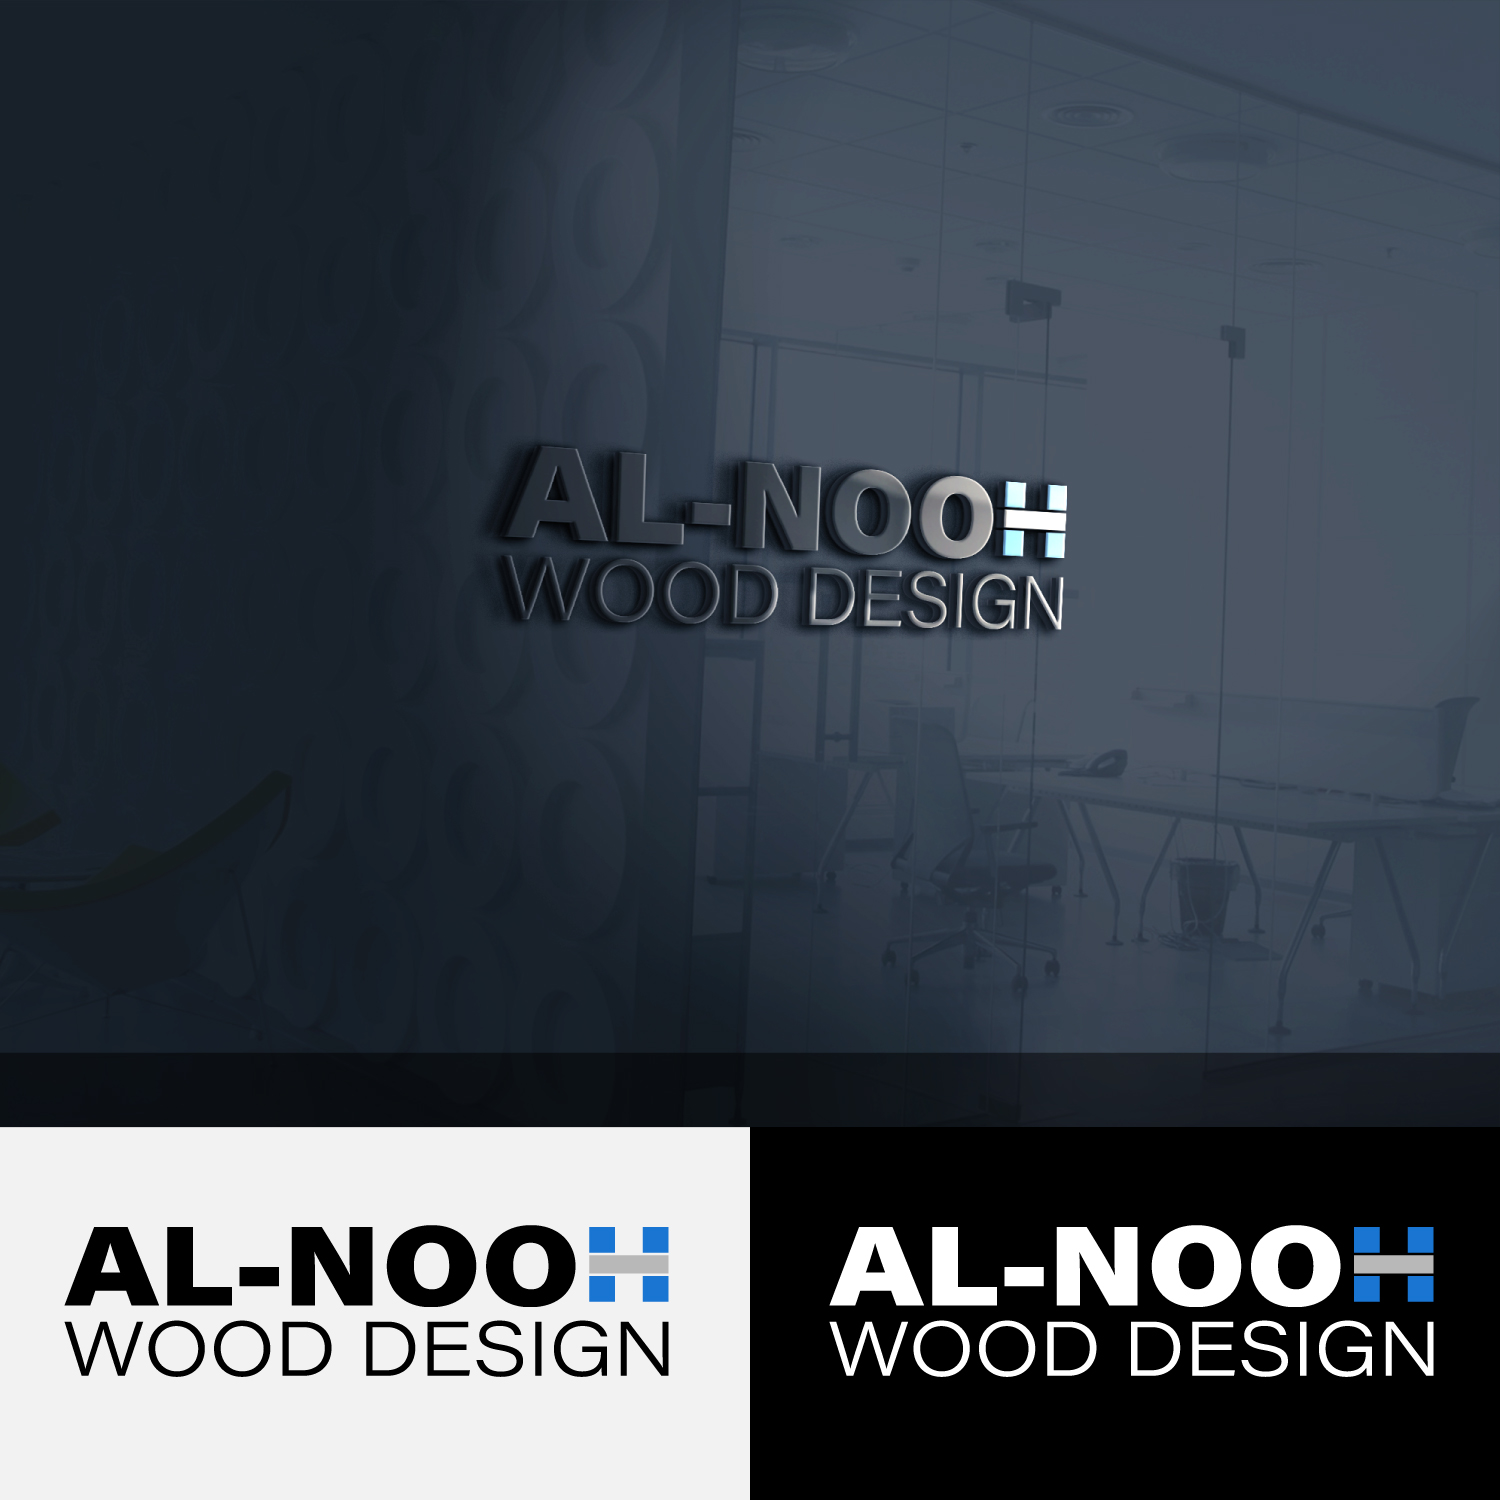 Serious Modern Interior Design Logo Design For Use 1 Al Nooh 2 Al Nooh Wood Design 3 Al Nooh Interiors Use All Names With Any Option To Be Handed In The Future By